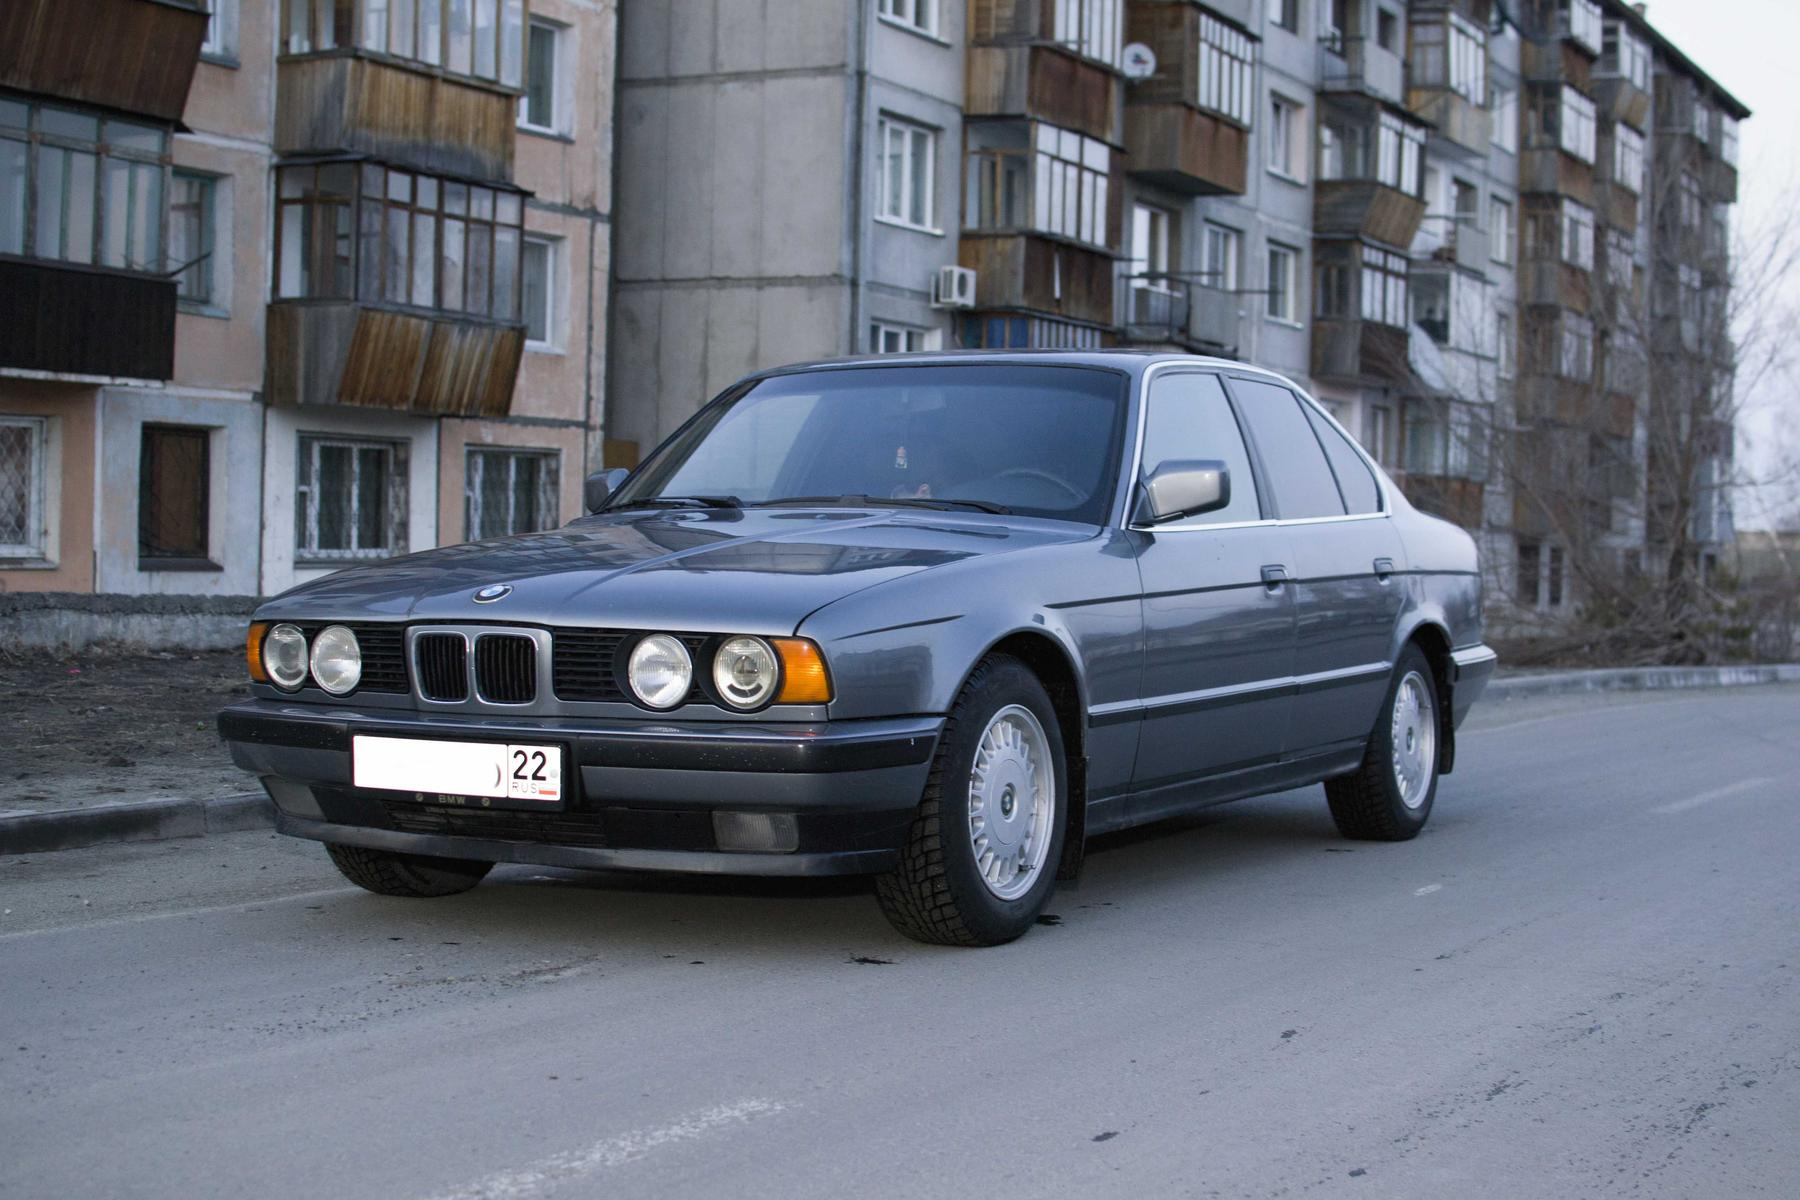 1992 Bmw 5er E34 Pictures Information And Specs 5 Series 1